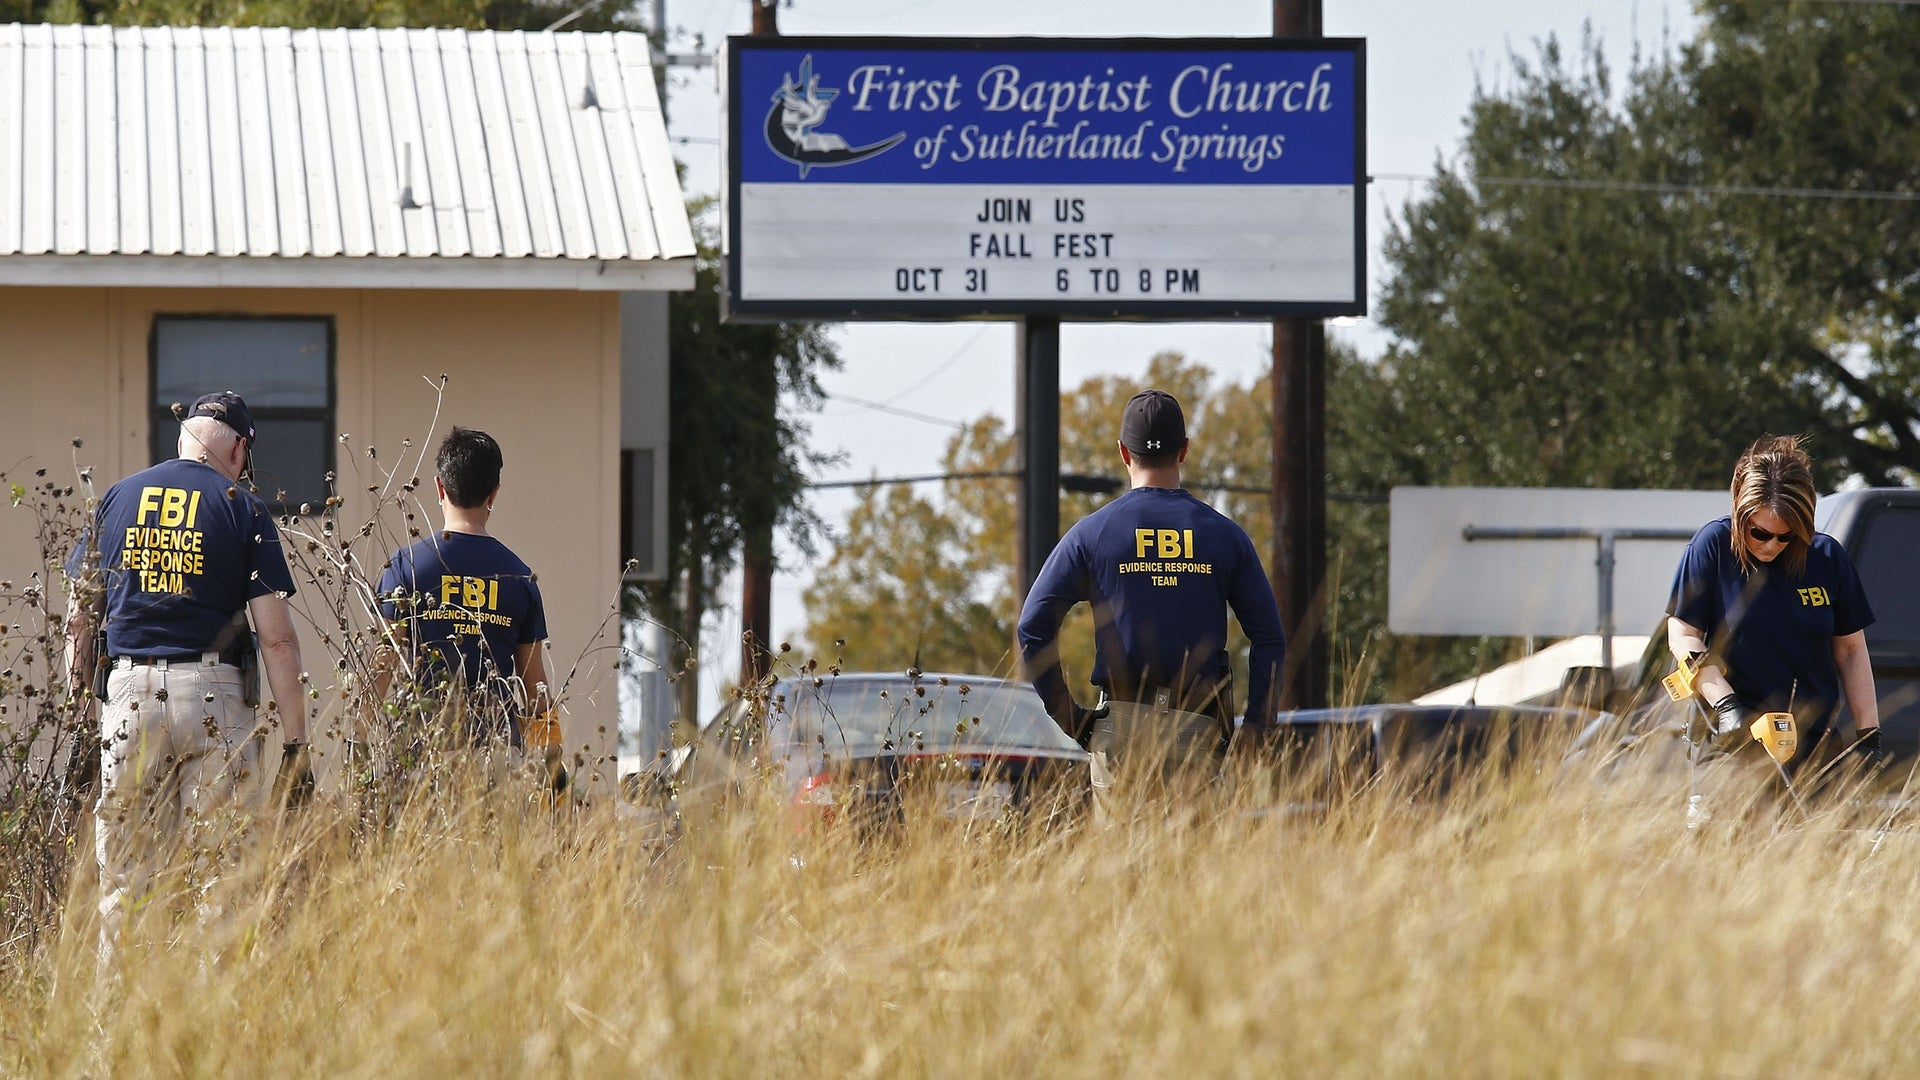 'Too Stark Of A Reminder.' Texas Church Where 26 Were Killed Will Be Demolished, Pastor Says